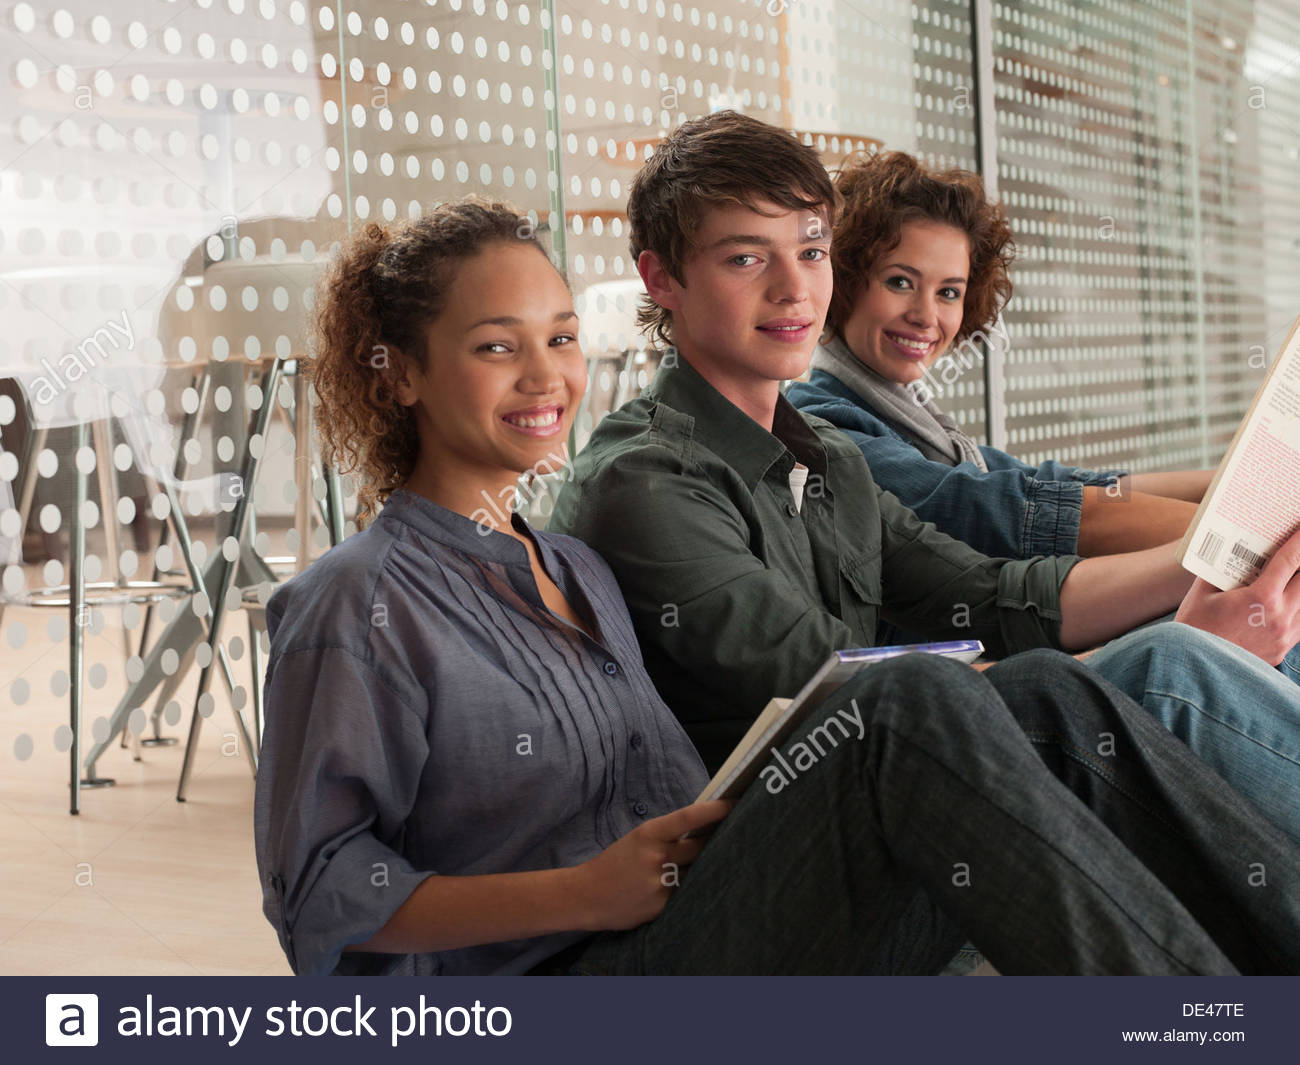 Smiling friends sitting in a row with holding book Photo Stock